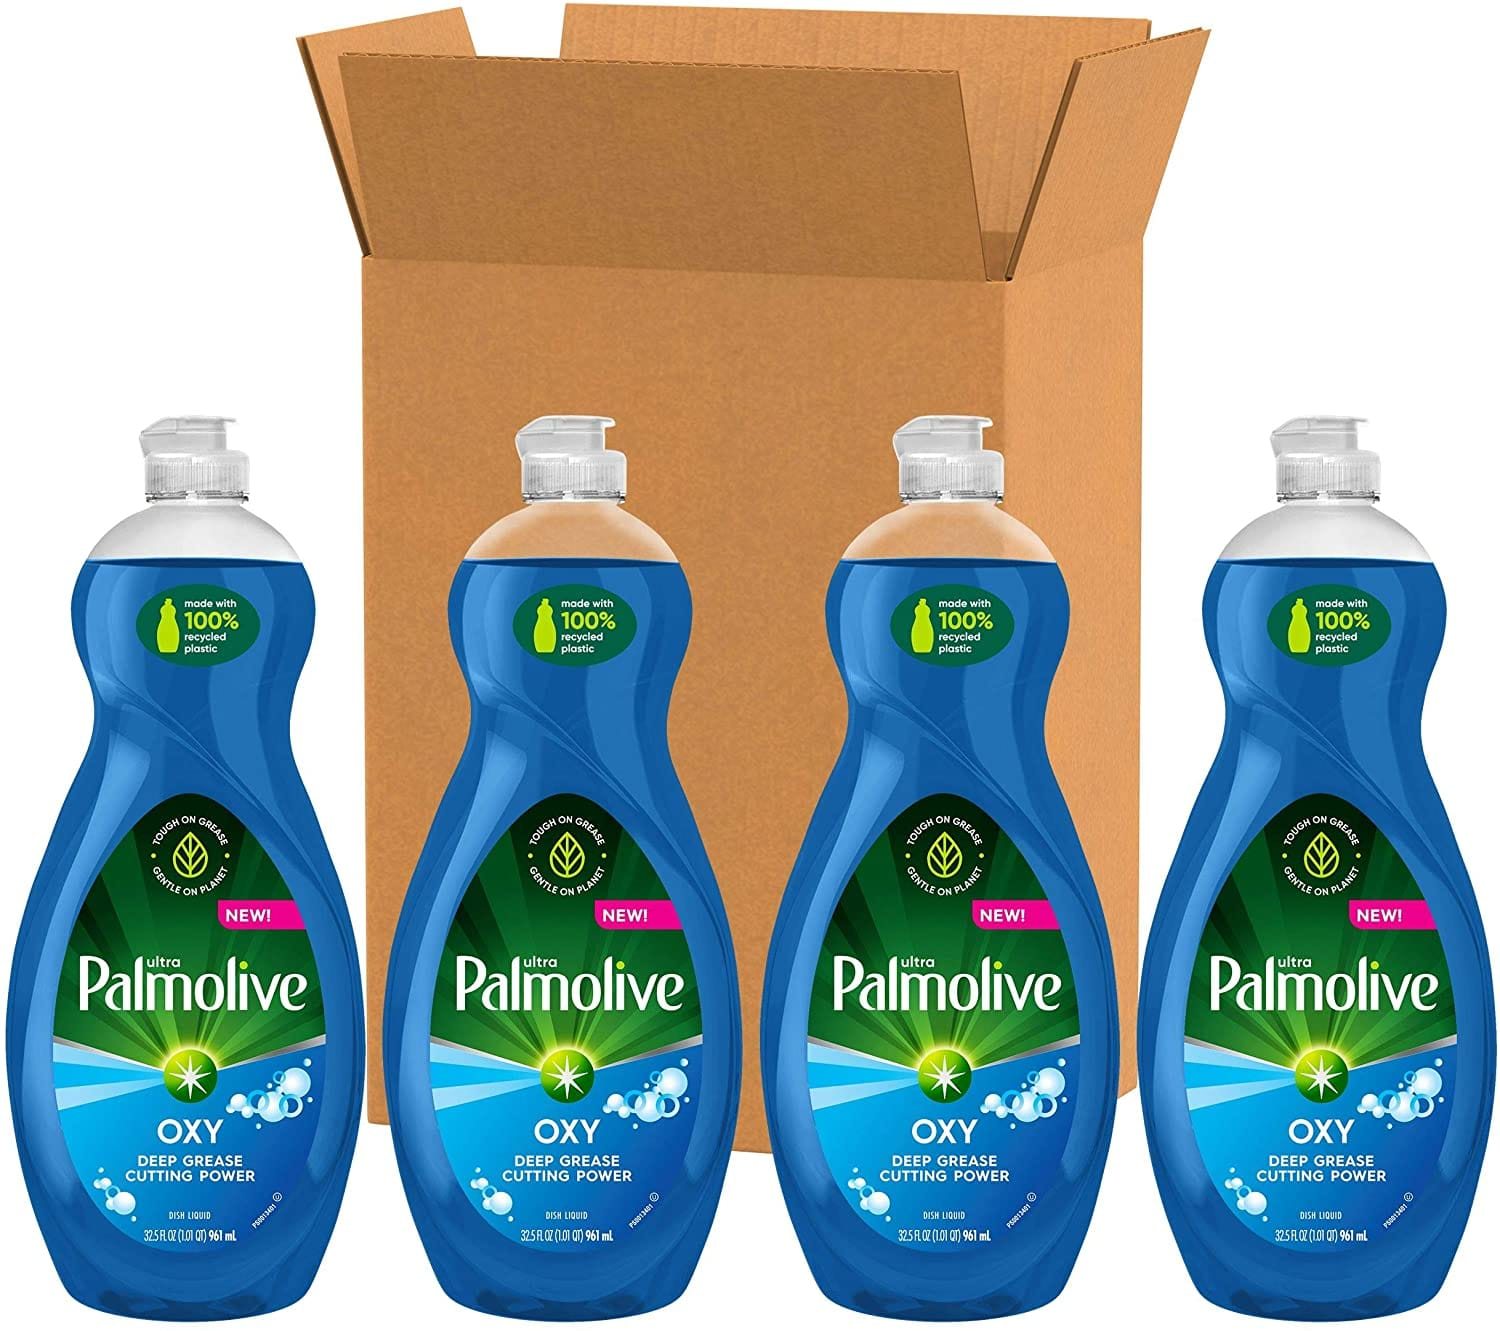 4-Pack 32.5-Oz Palmolive Ultra Dish Soap (Oxy Power Degreaser) $8.98 w/ S&S + Free Shipping w/ Prime or $25+